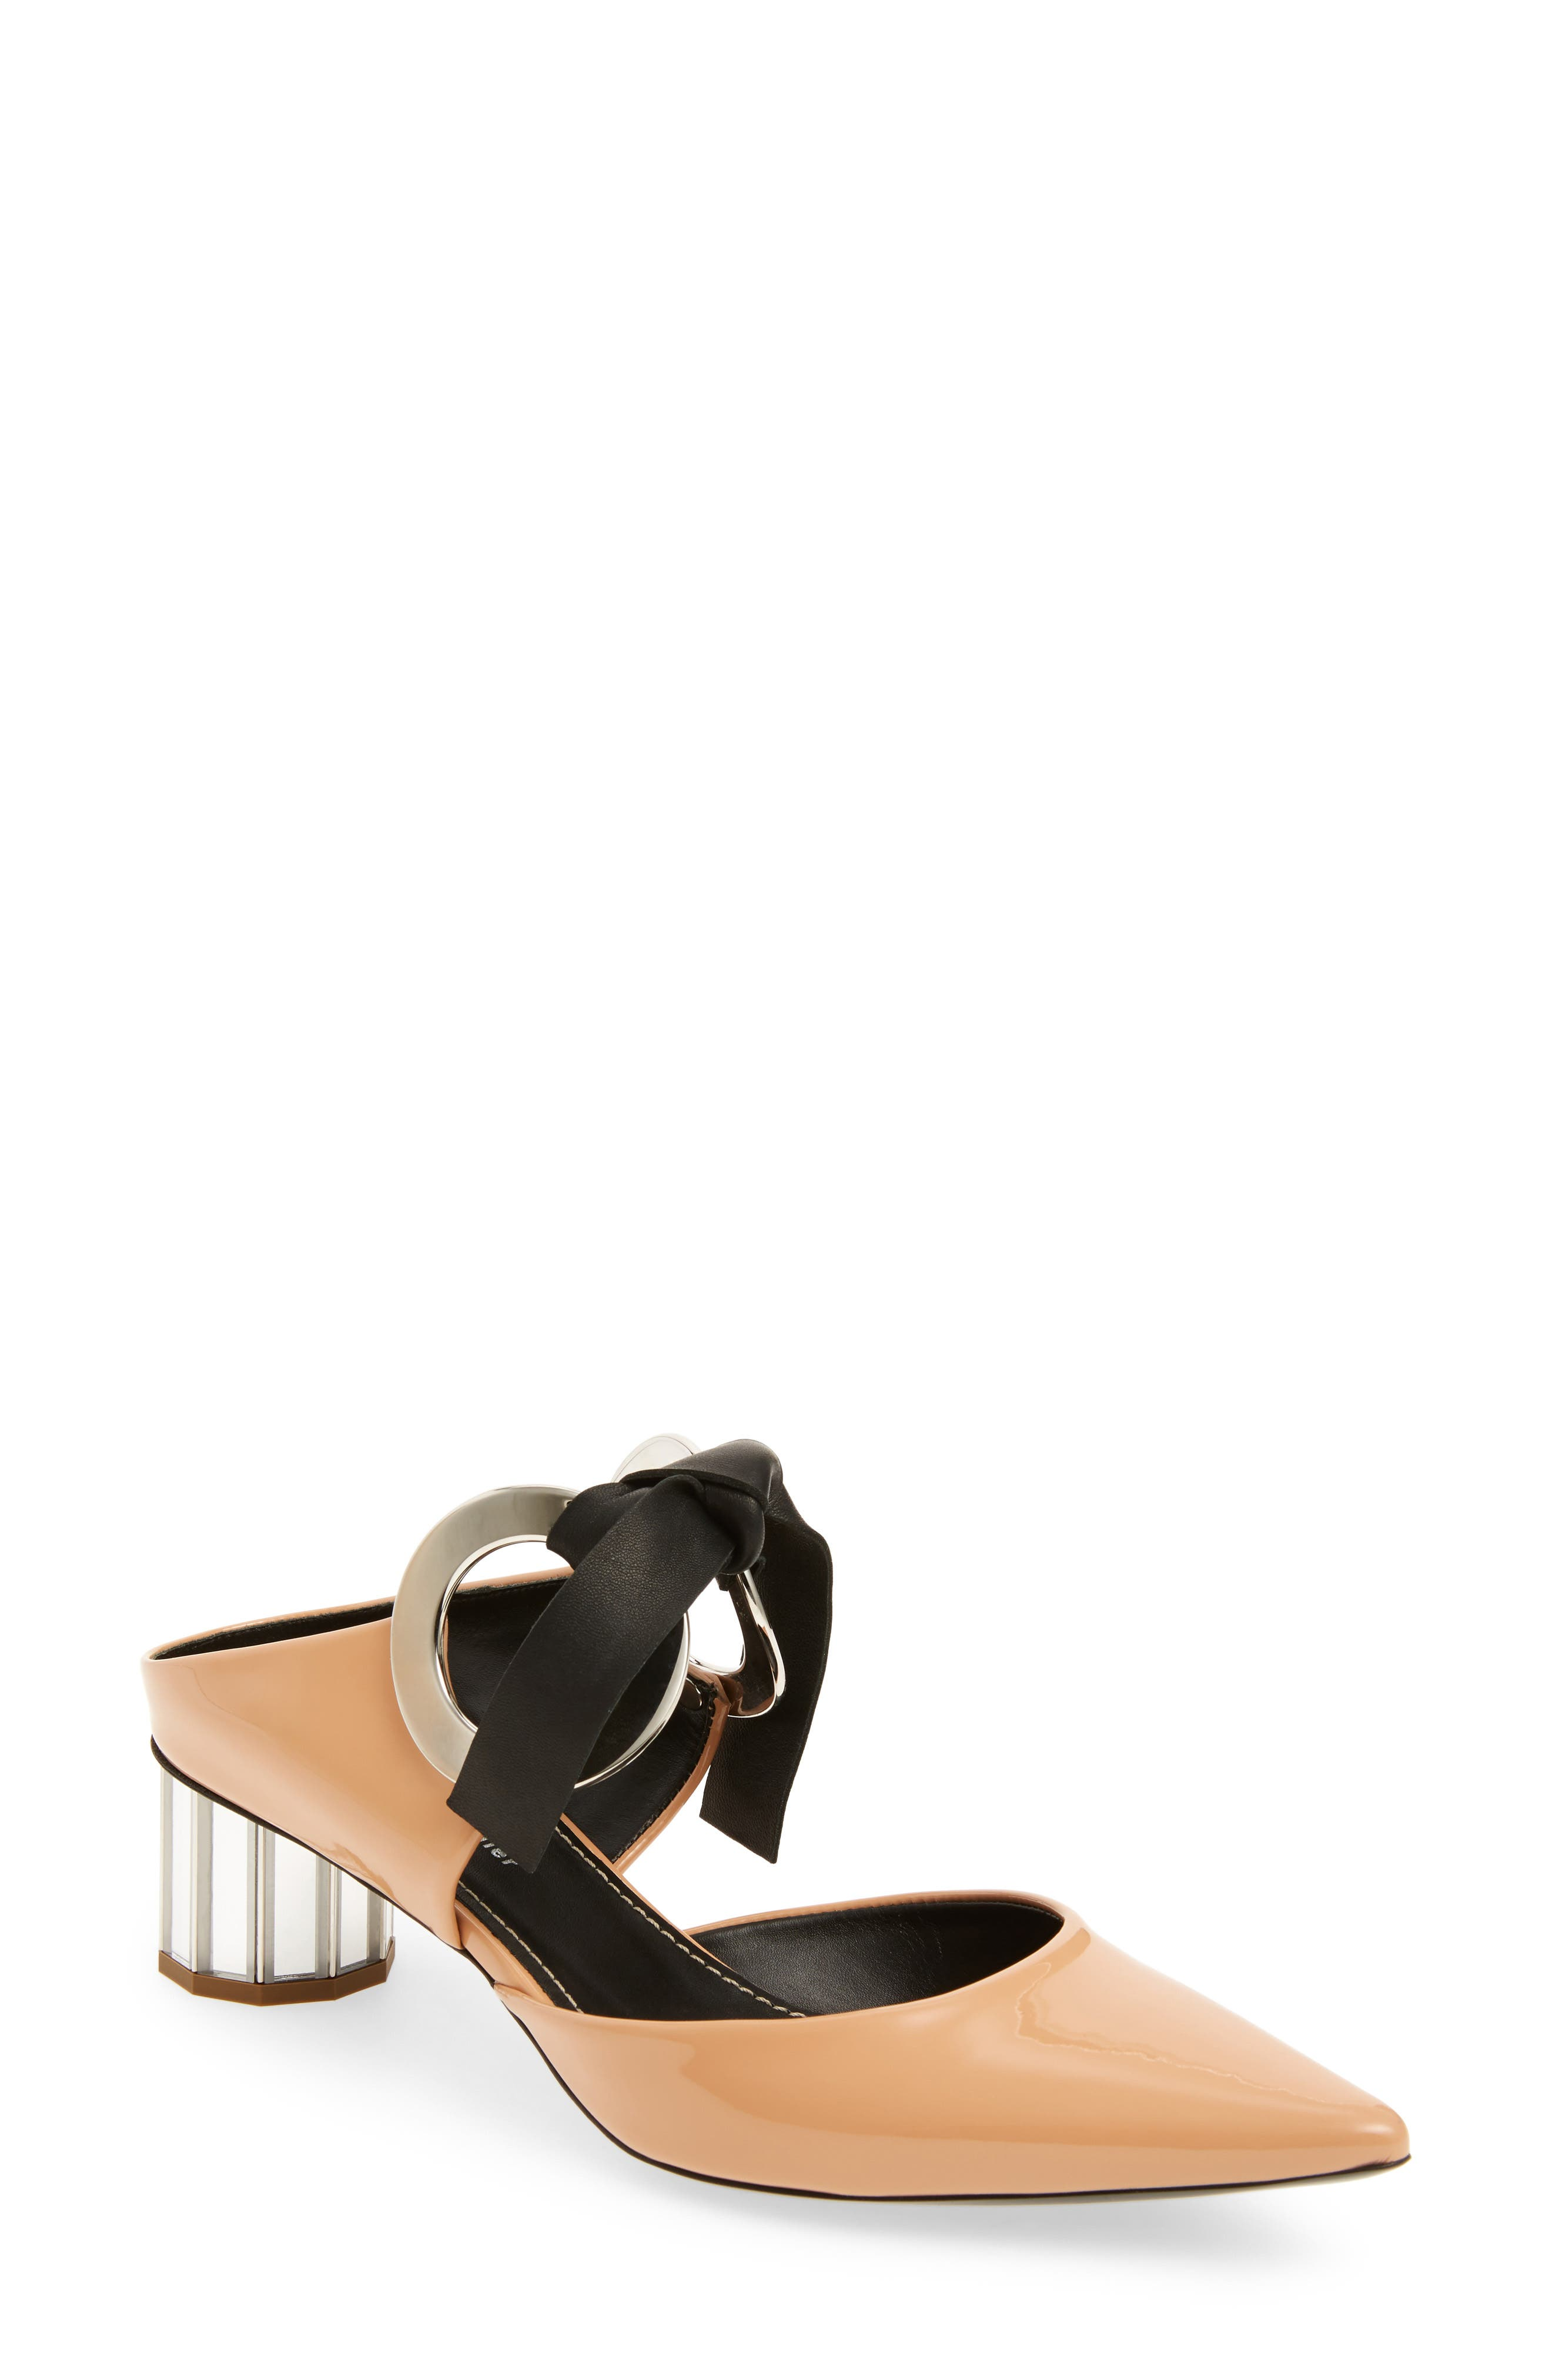 Proenza Schouler Ring Tie Pointy Toe Pump (Women)